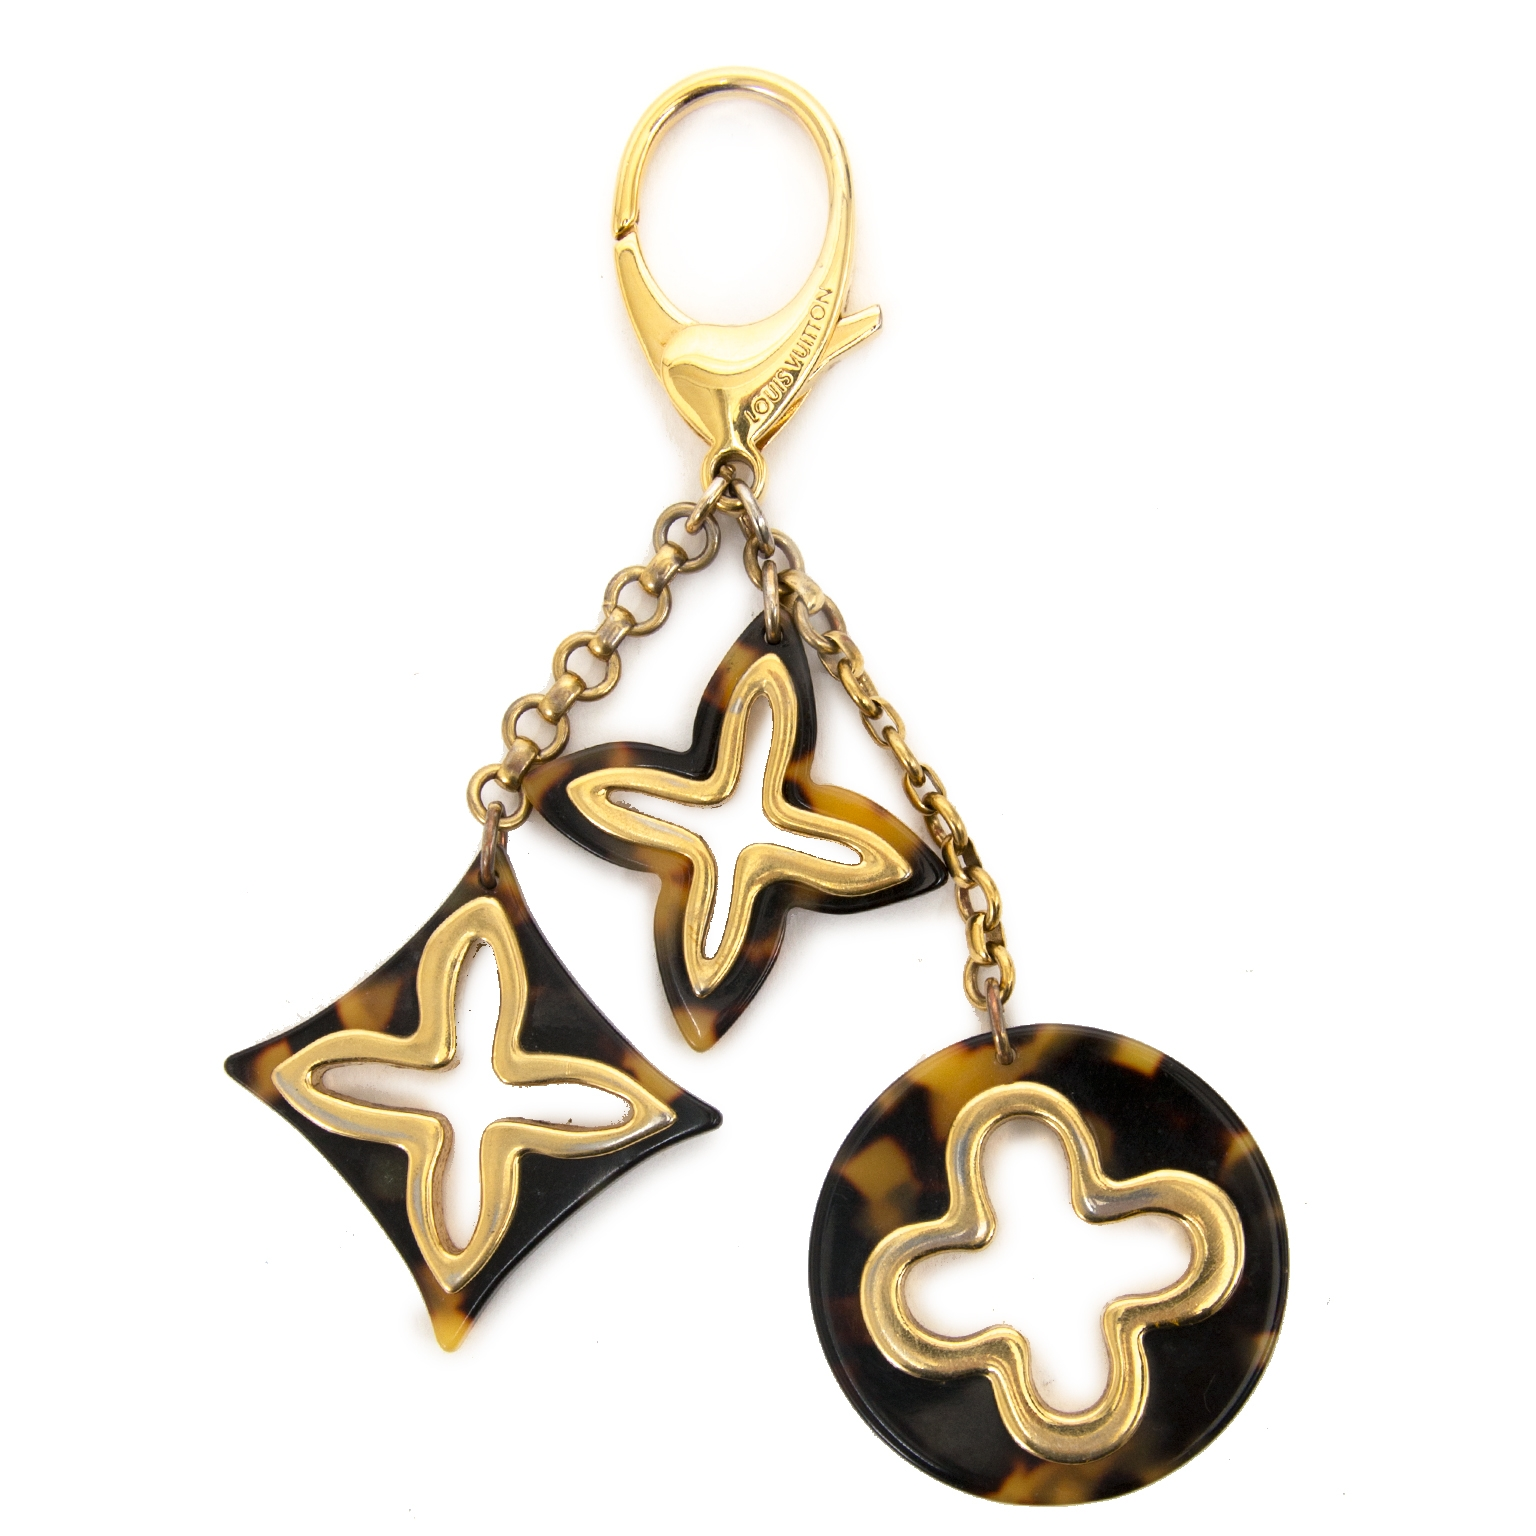 bbb9f39fda7 ... LAbellov Buy your authentic Louis Vuitton Insolence Bag Charm for the  best price